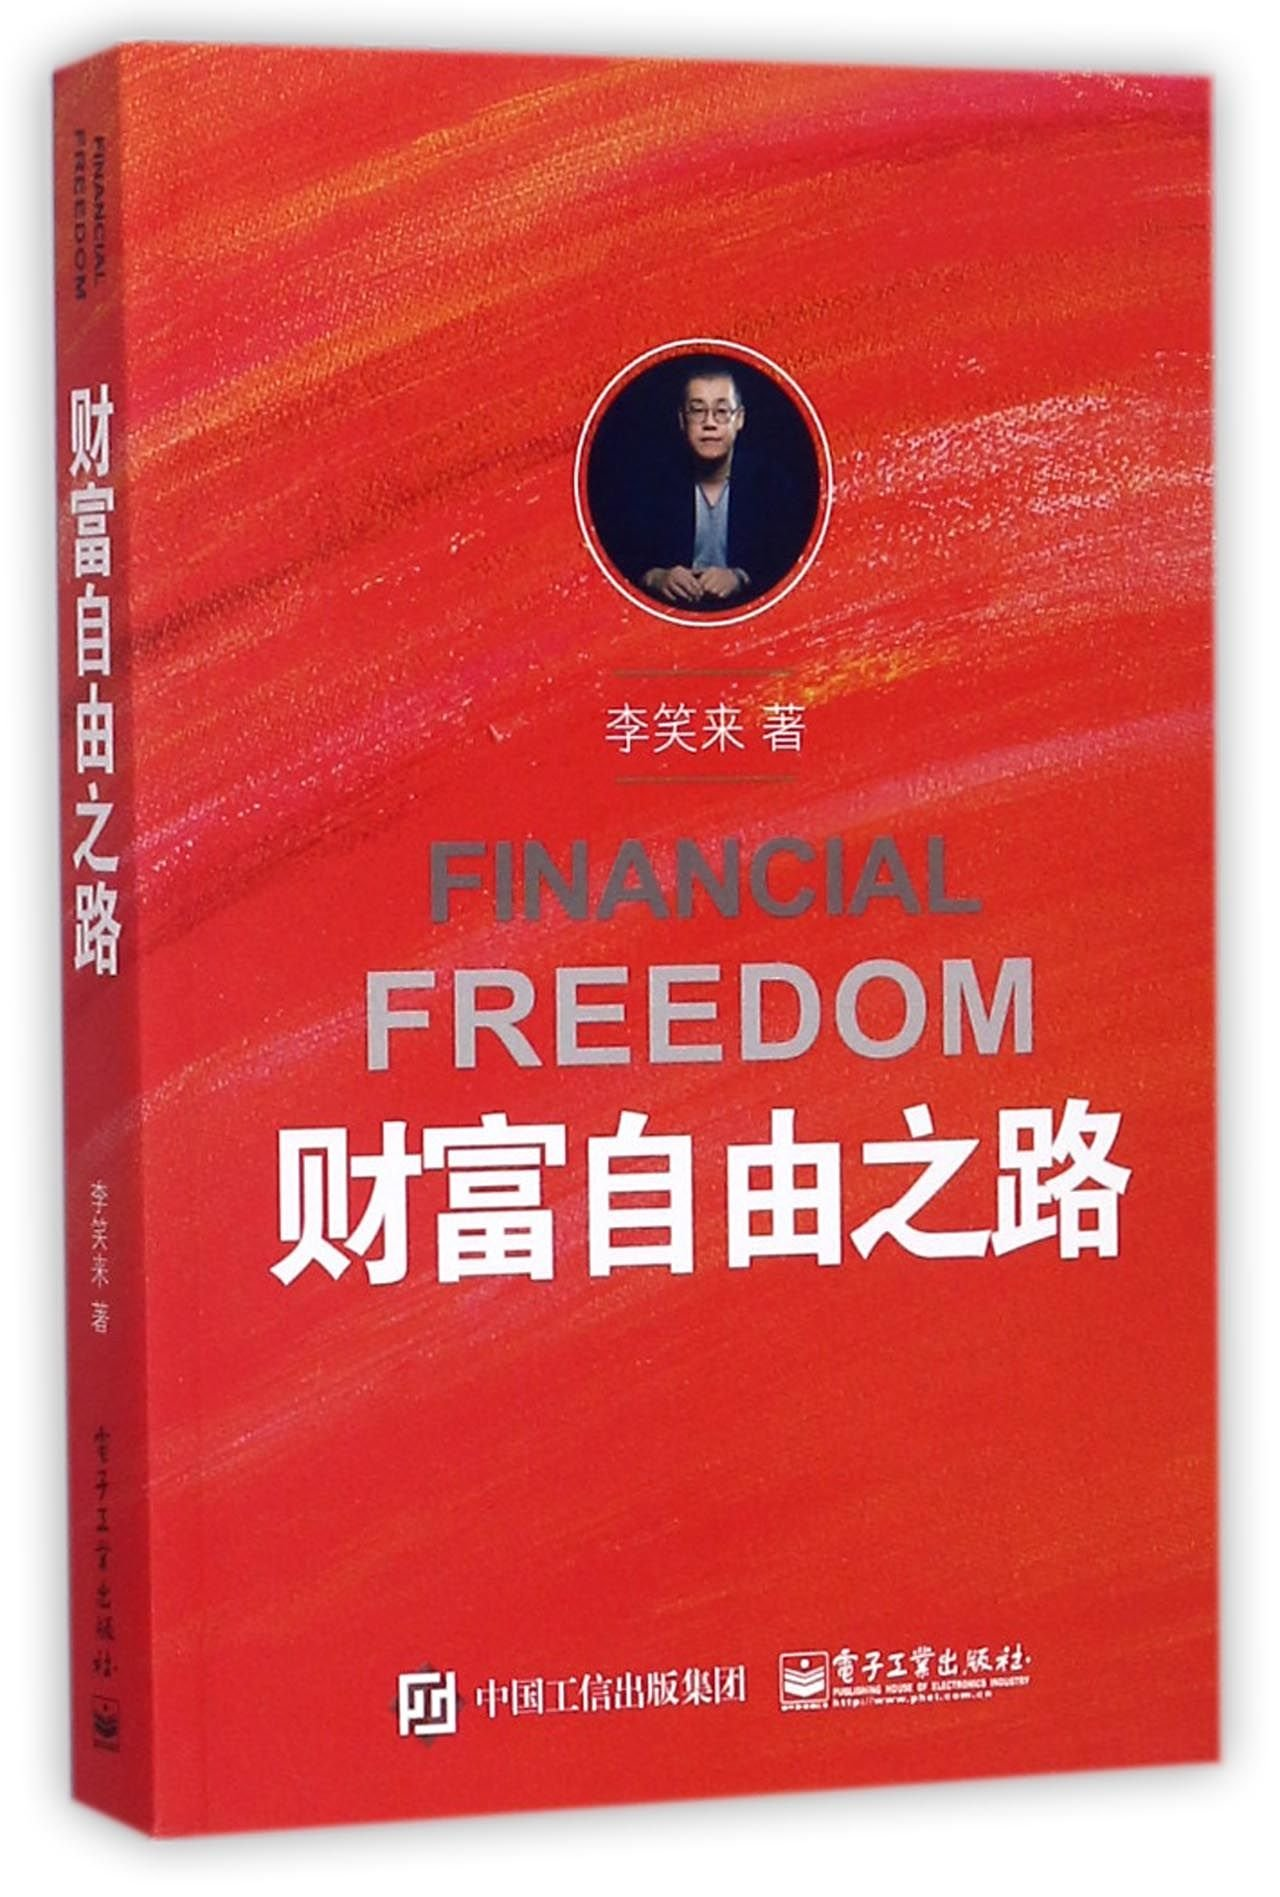 Financial Freedom (Chinese Edition)